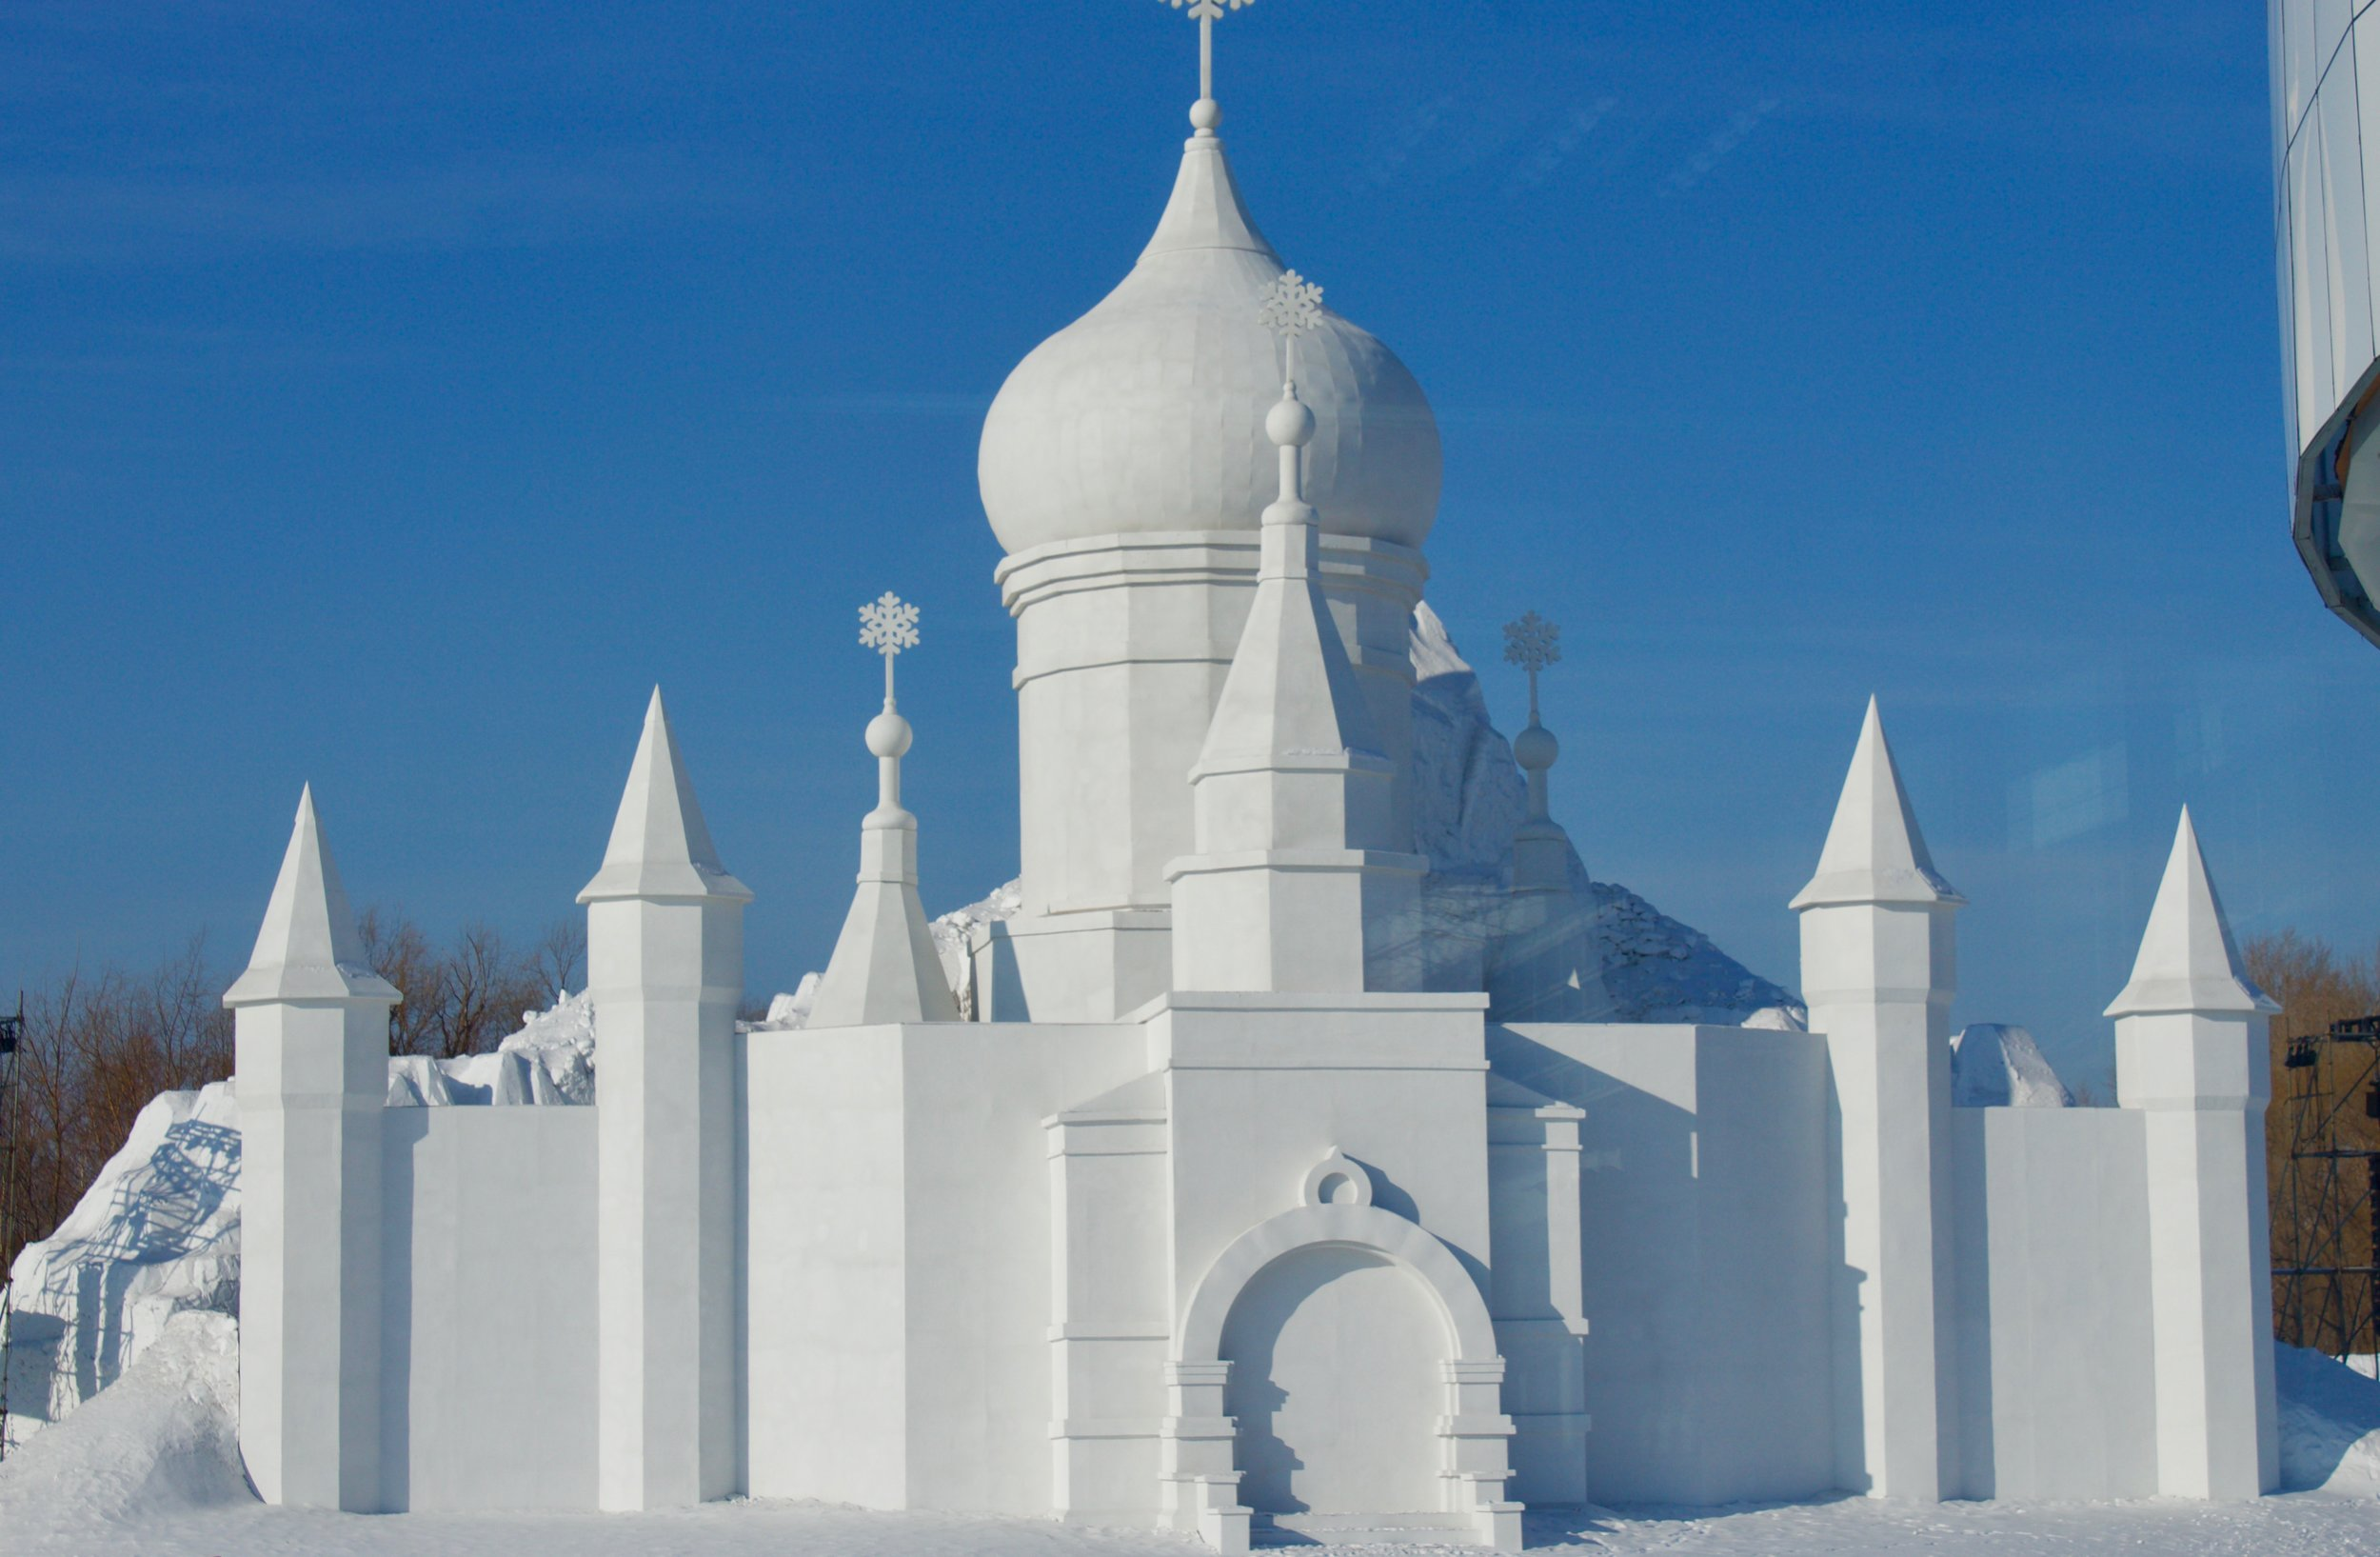 A snow cathedral. The way its made resembles the façade of the Sophia Cathedral.